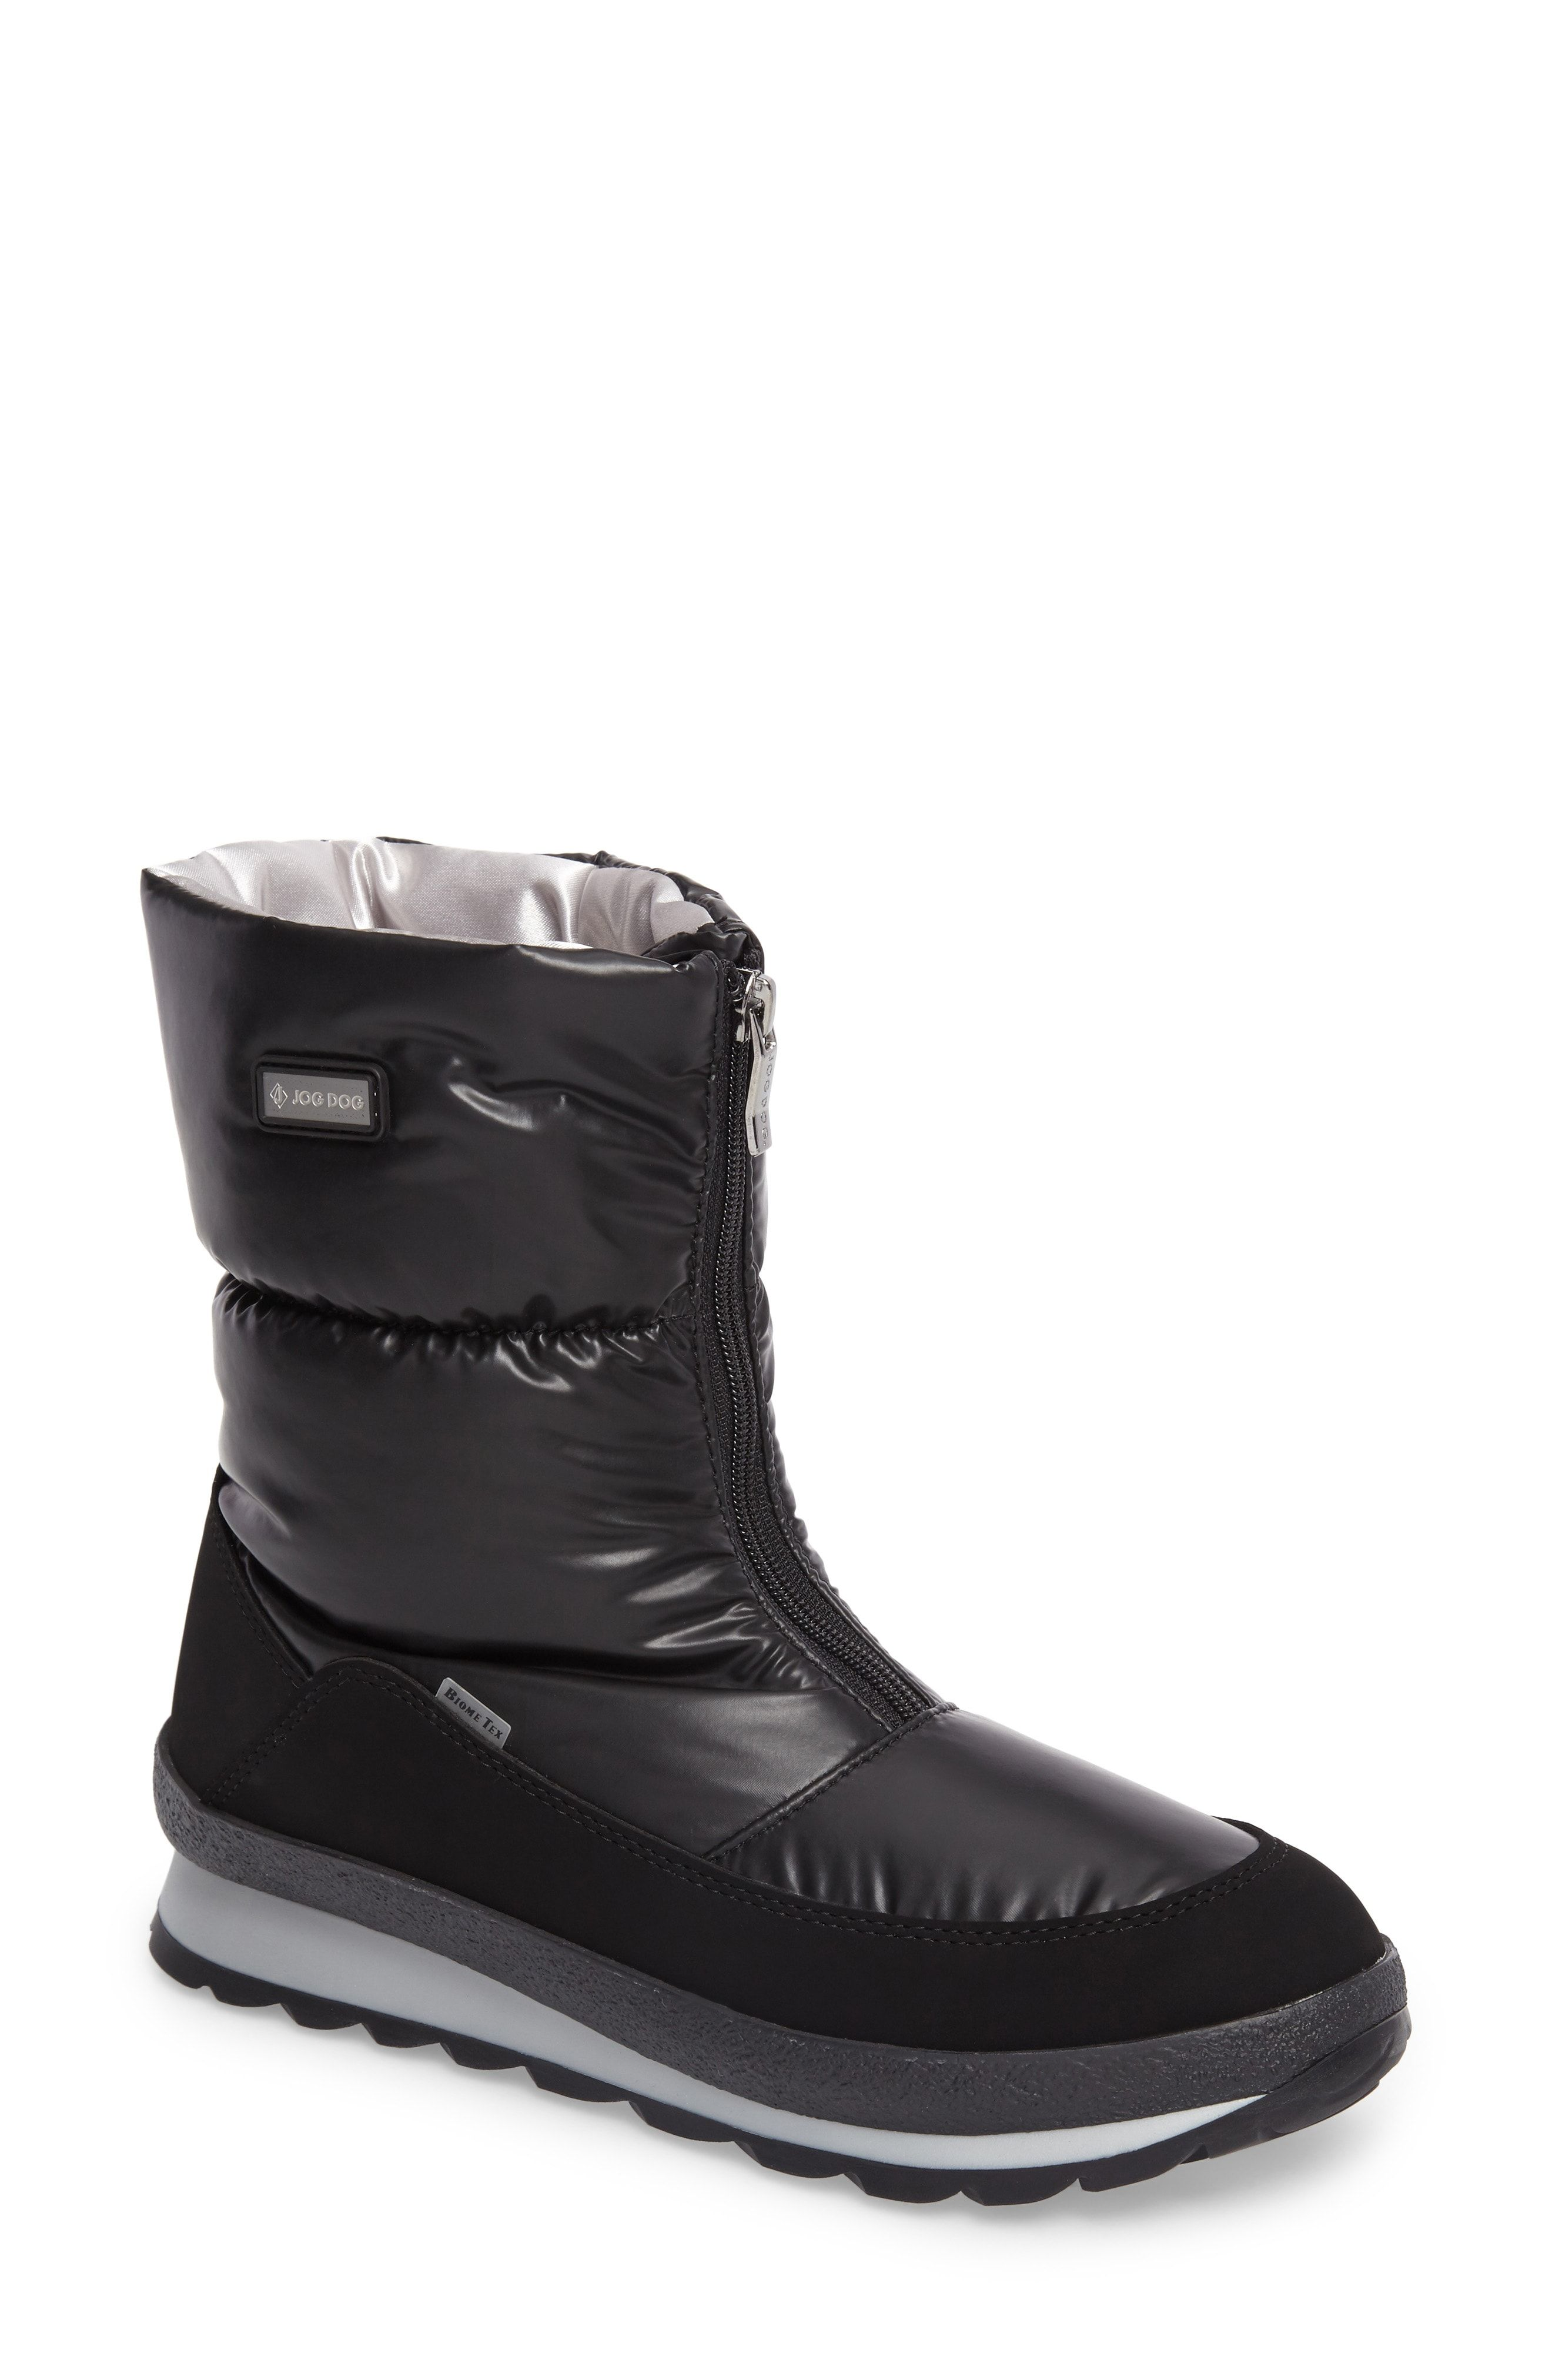 e291eaa63 25 Most Stylish Winter Boots For Women In 2019 - Cute Winter Boots